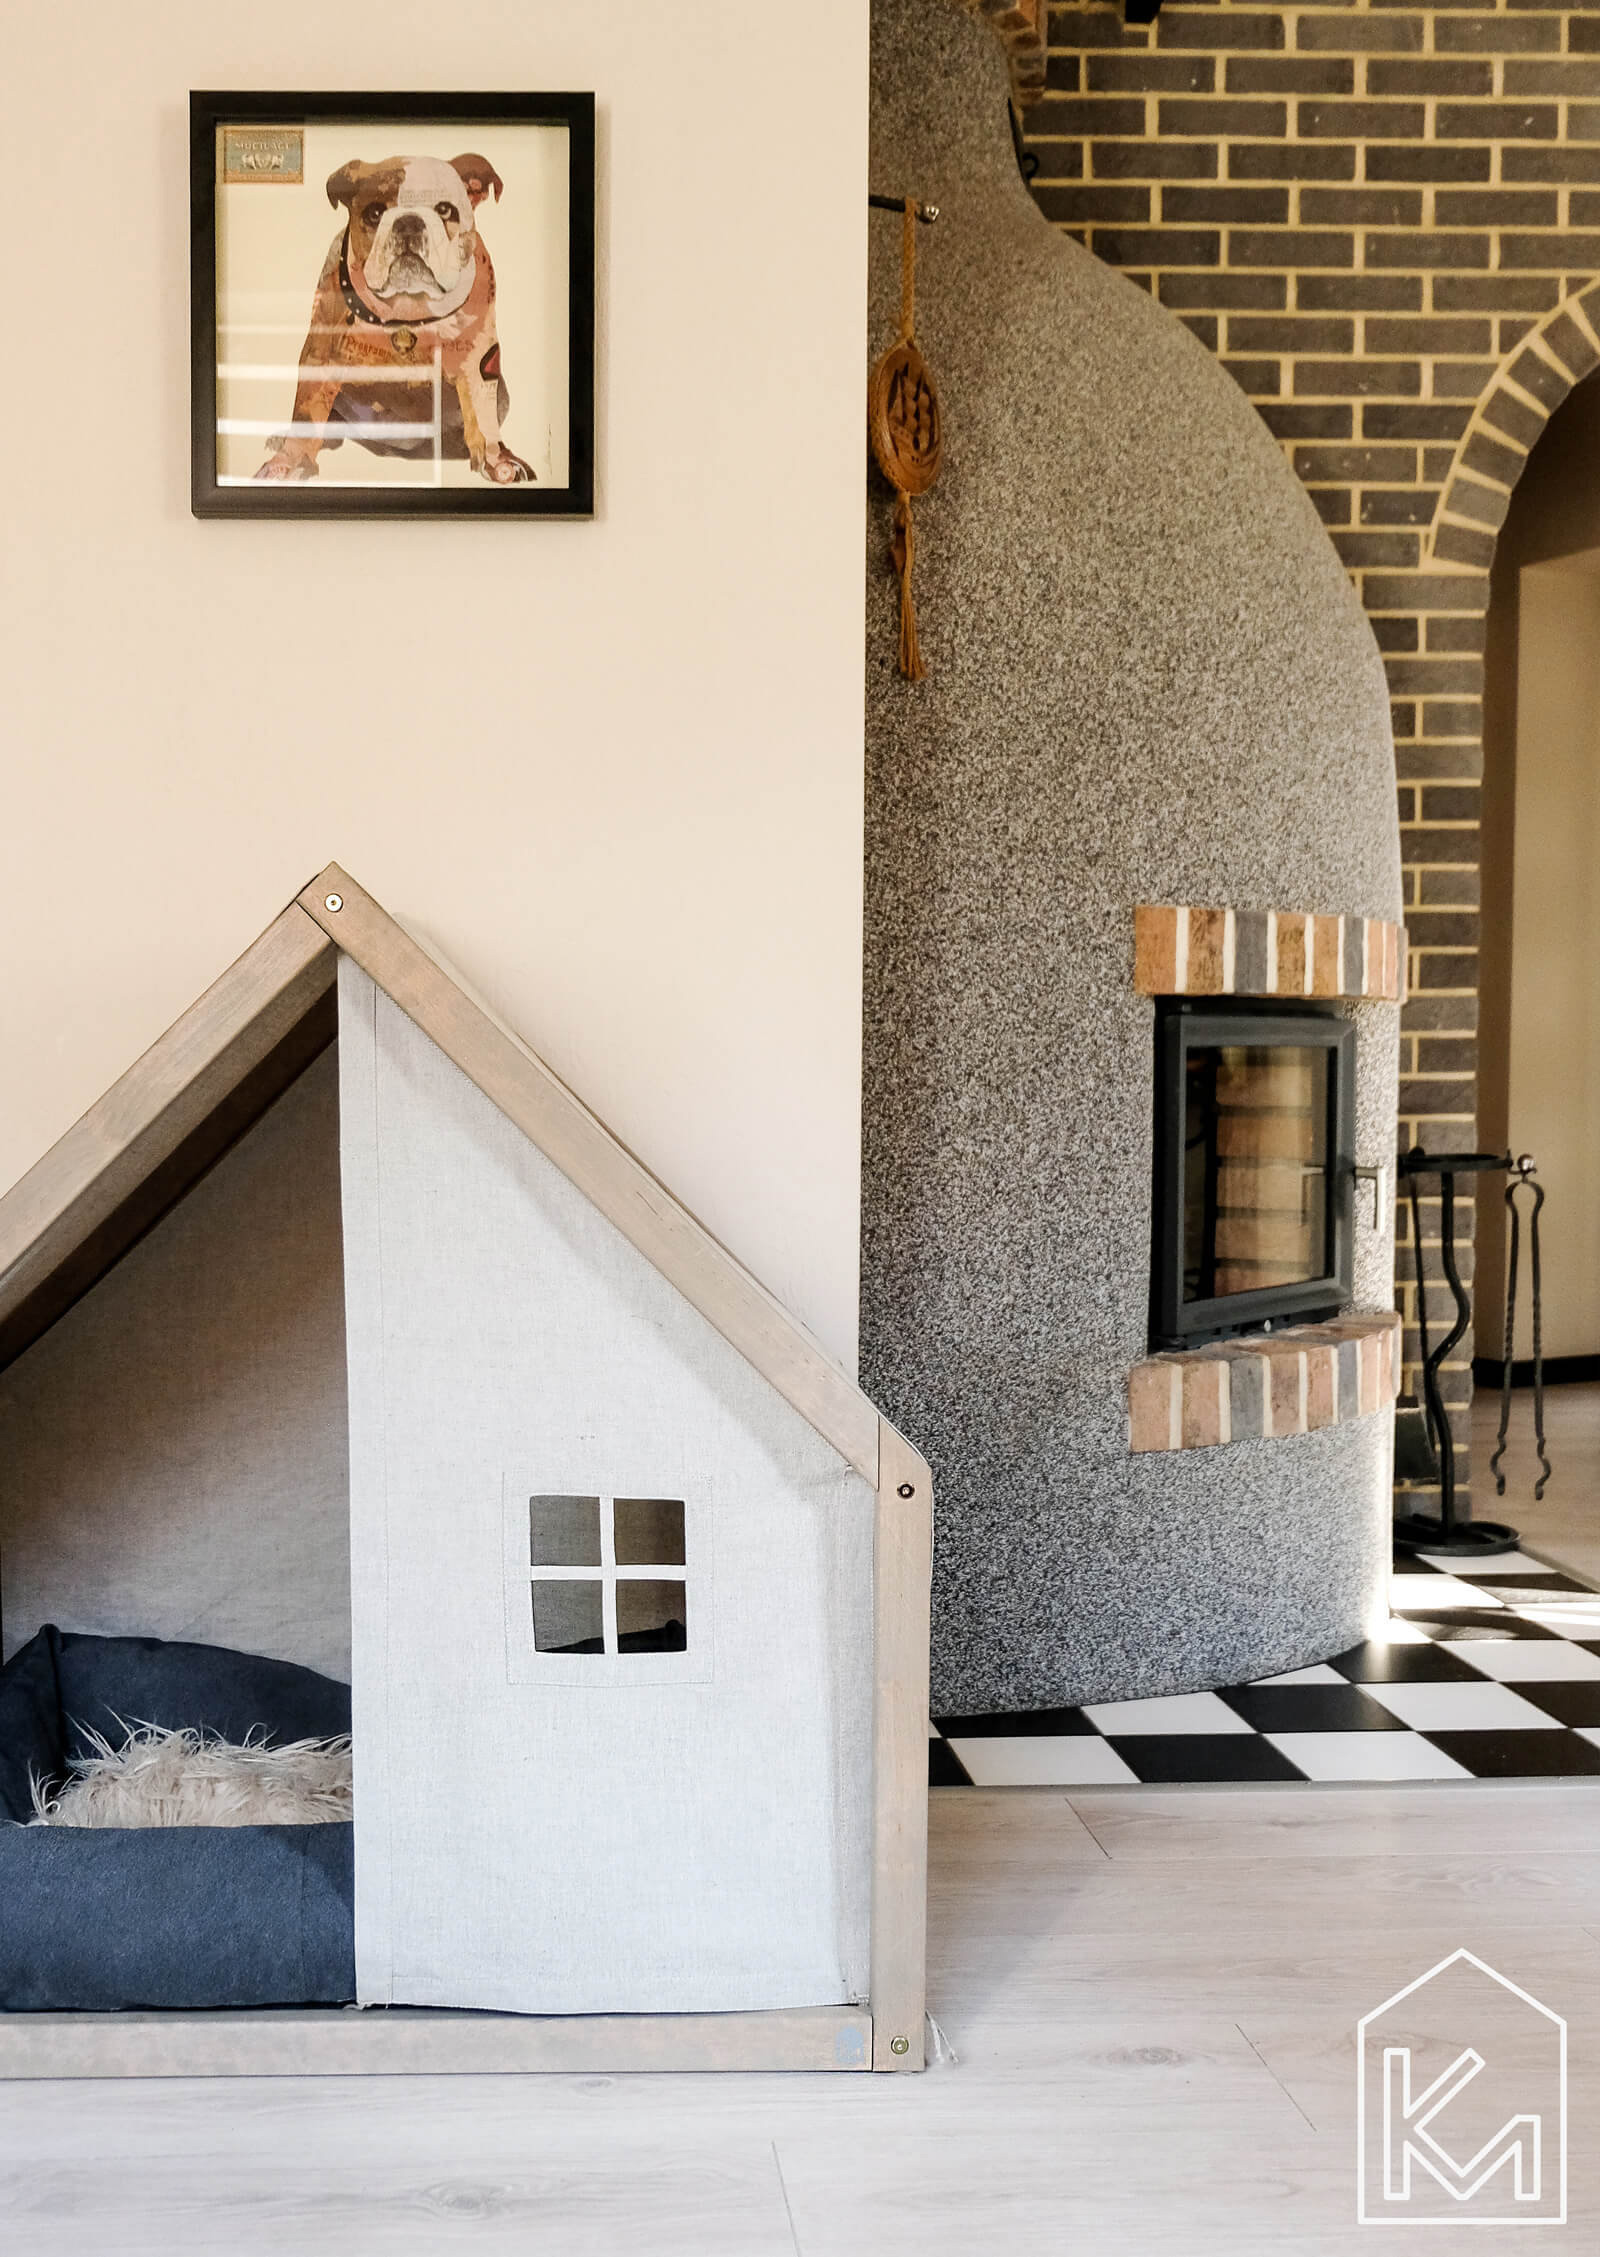 Modern Indoor Doghouses from KM Design Co.